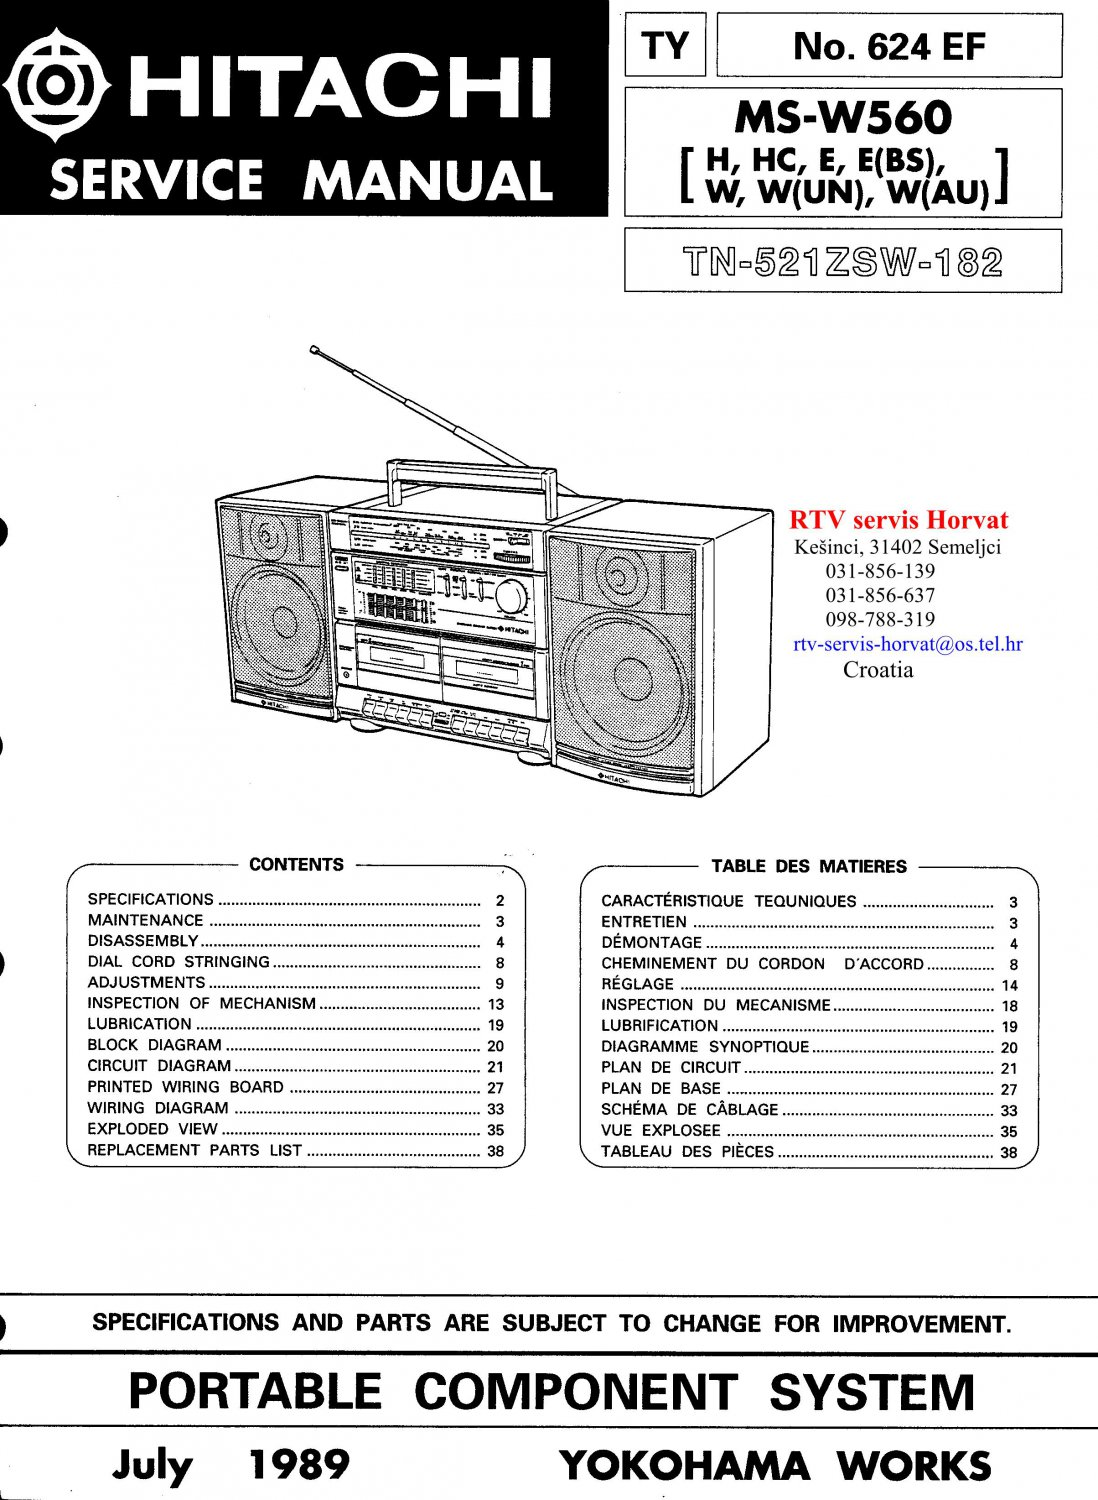 Hitachi MSW560 Music System Service Manual PDF download.